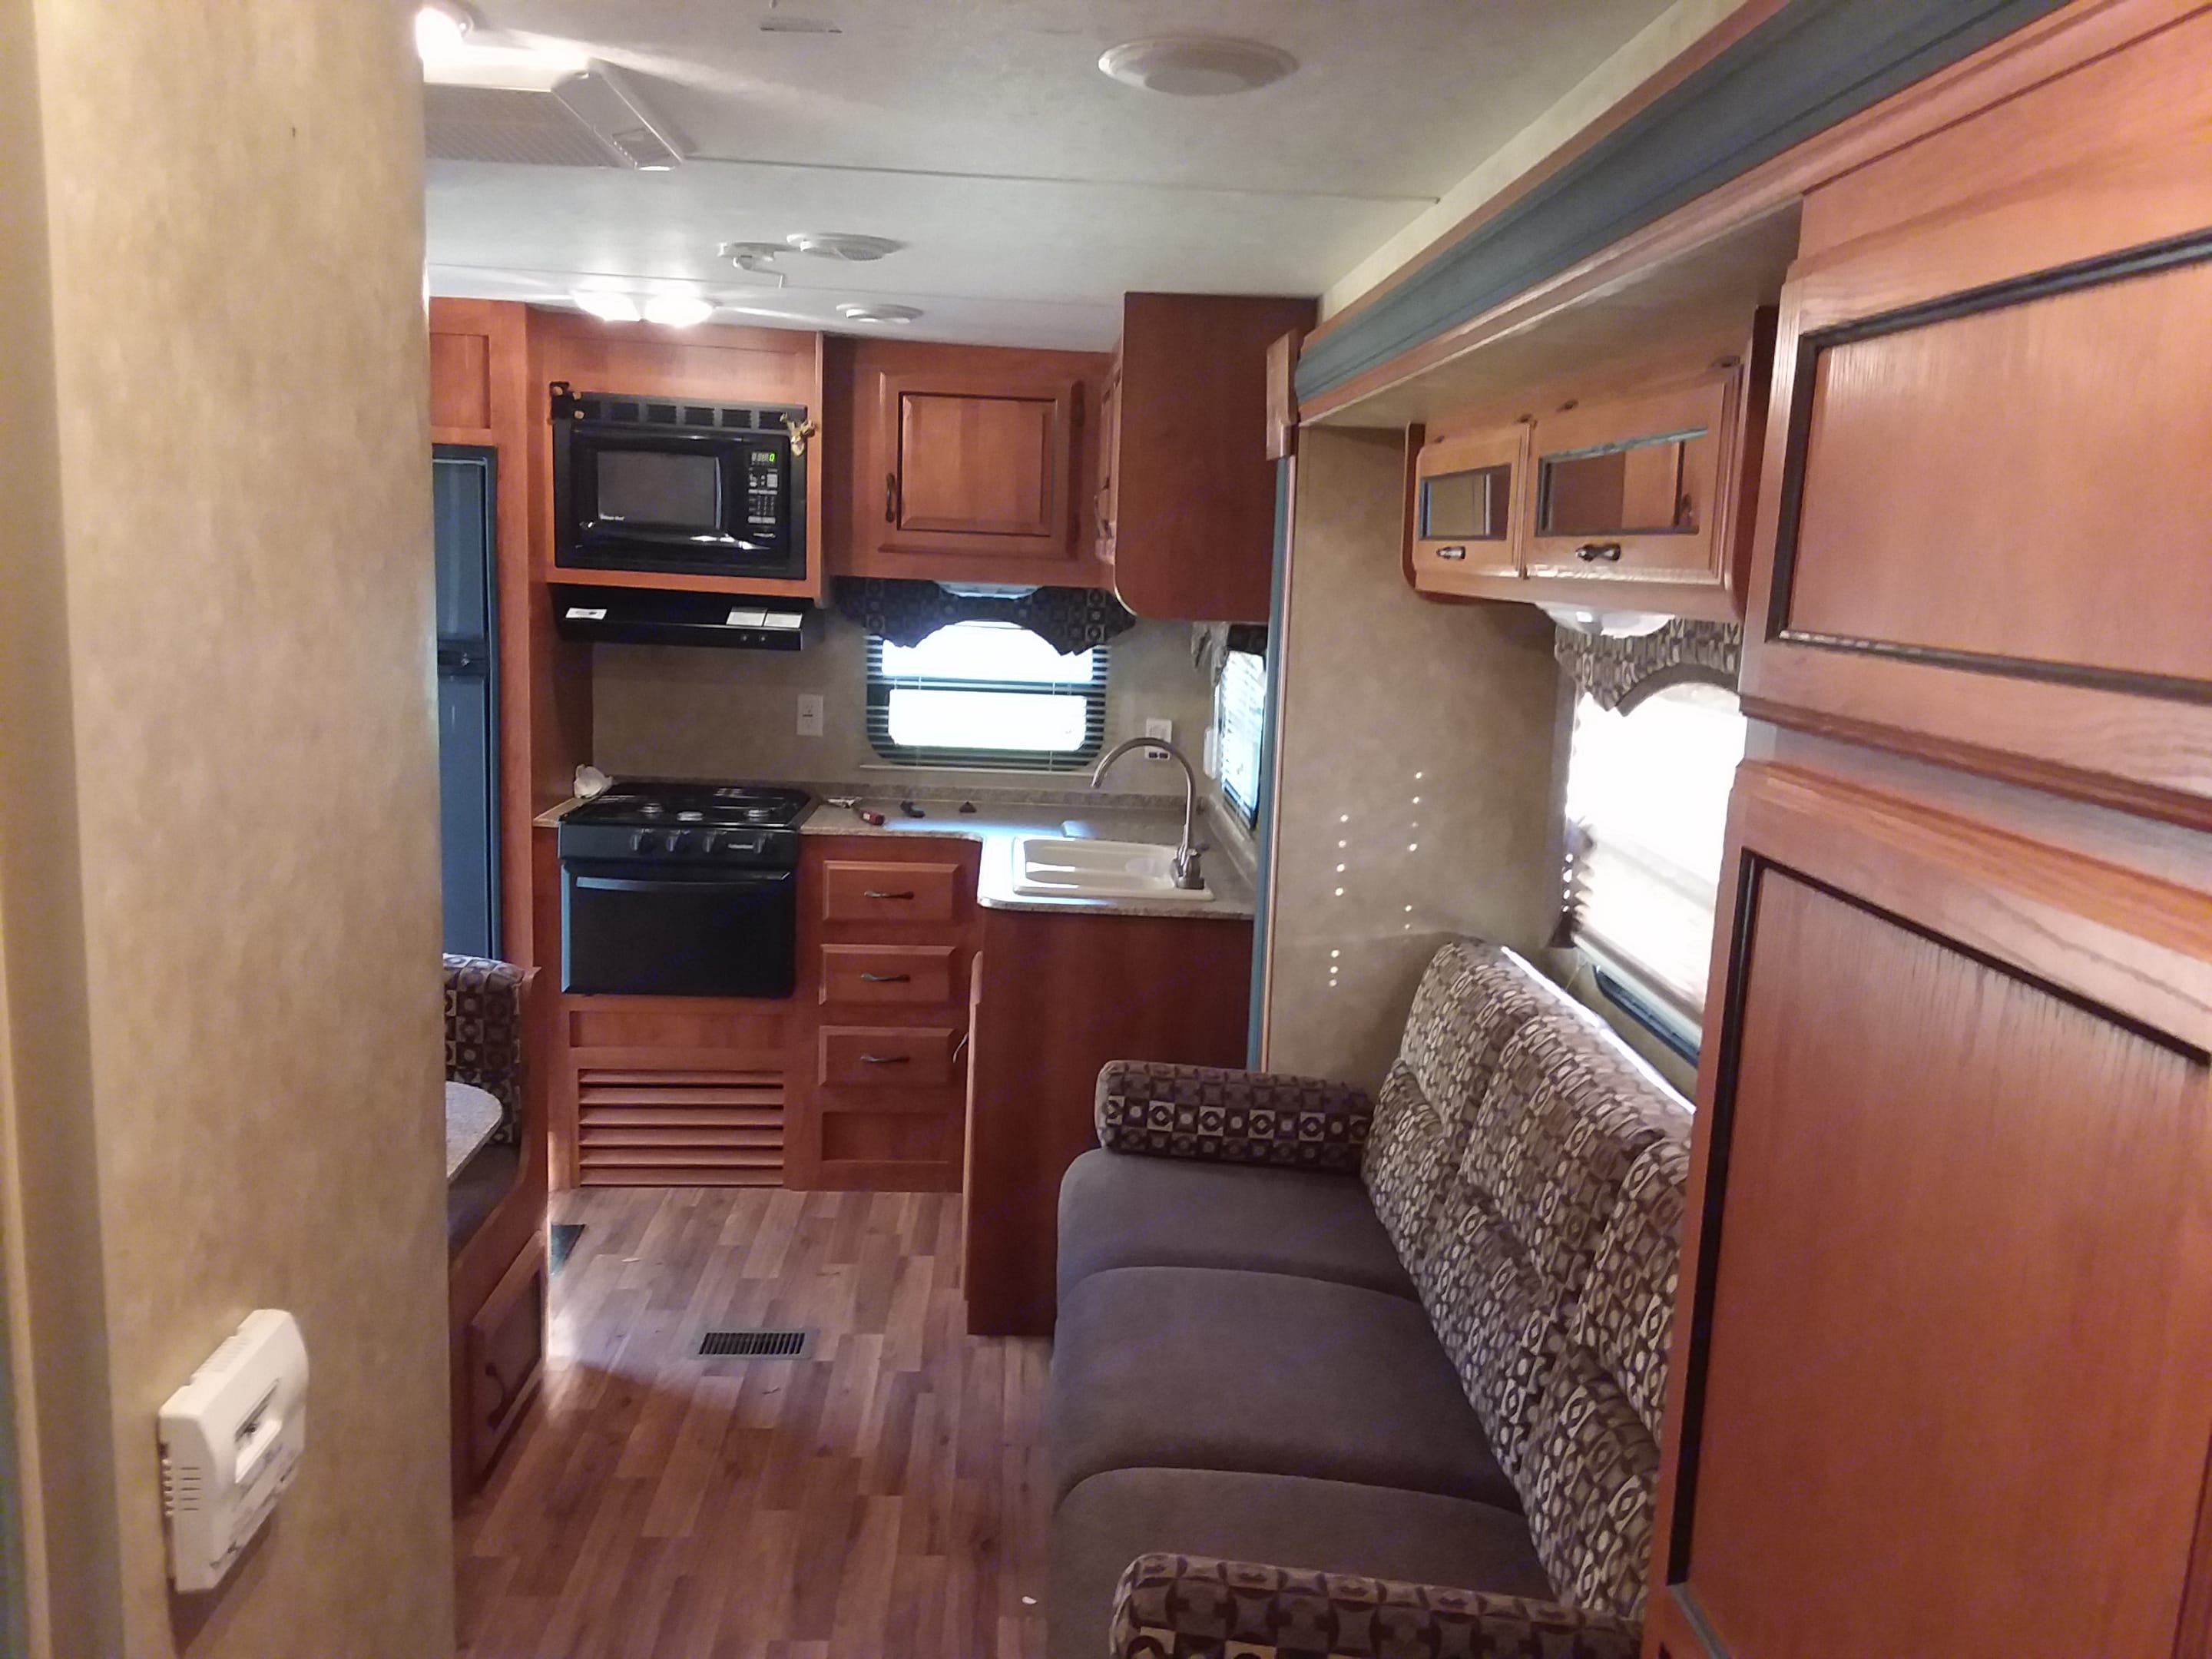 Couch pulls out to a bed and table turns into a bed. Coachmen Catalina 2012